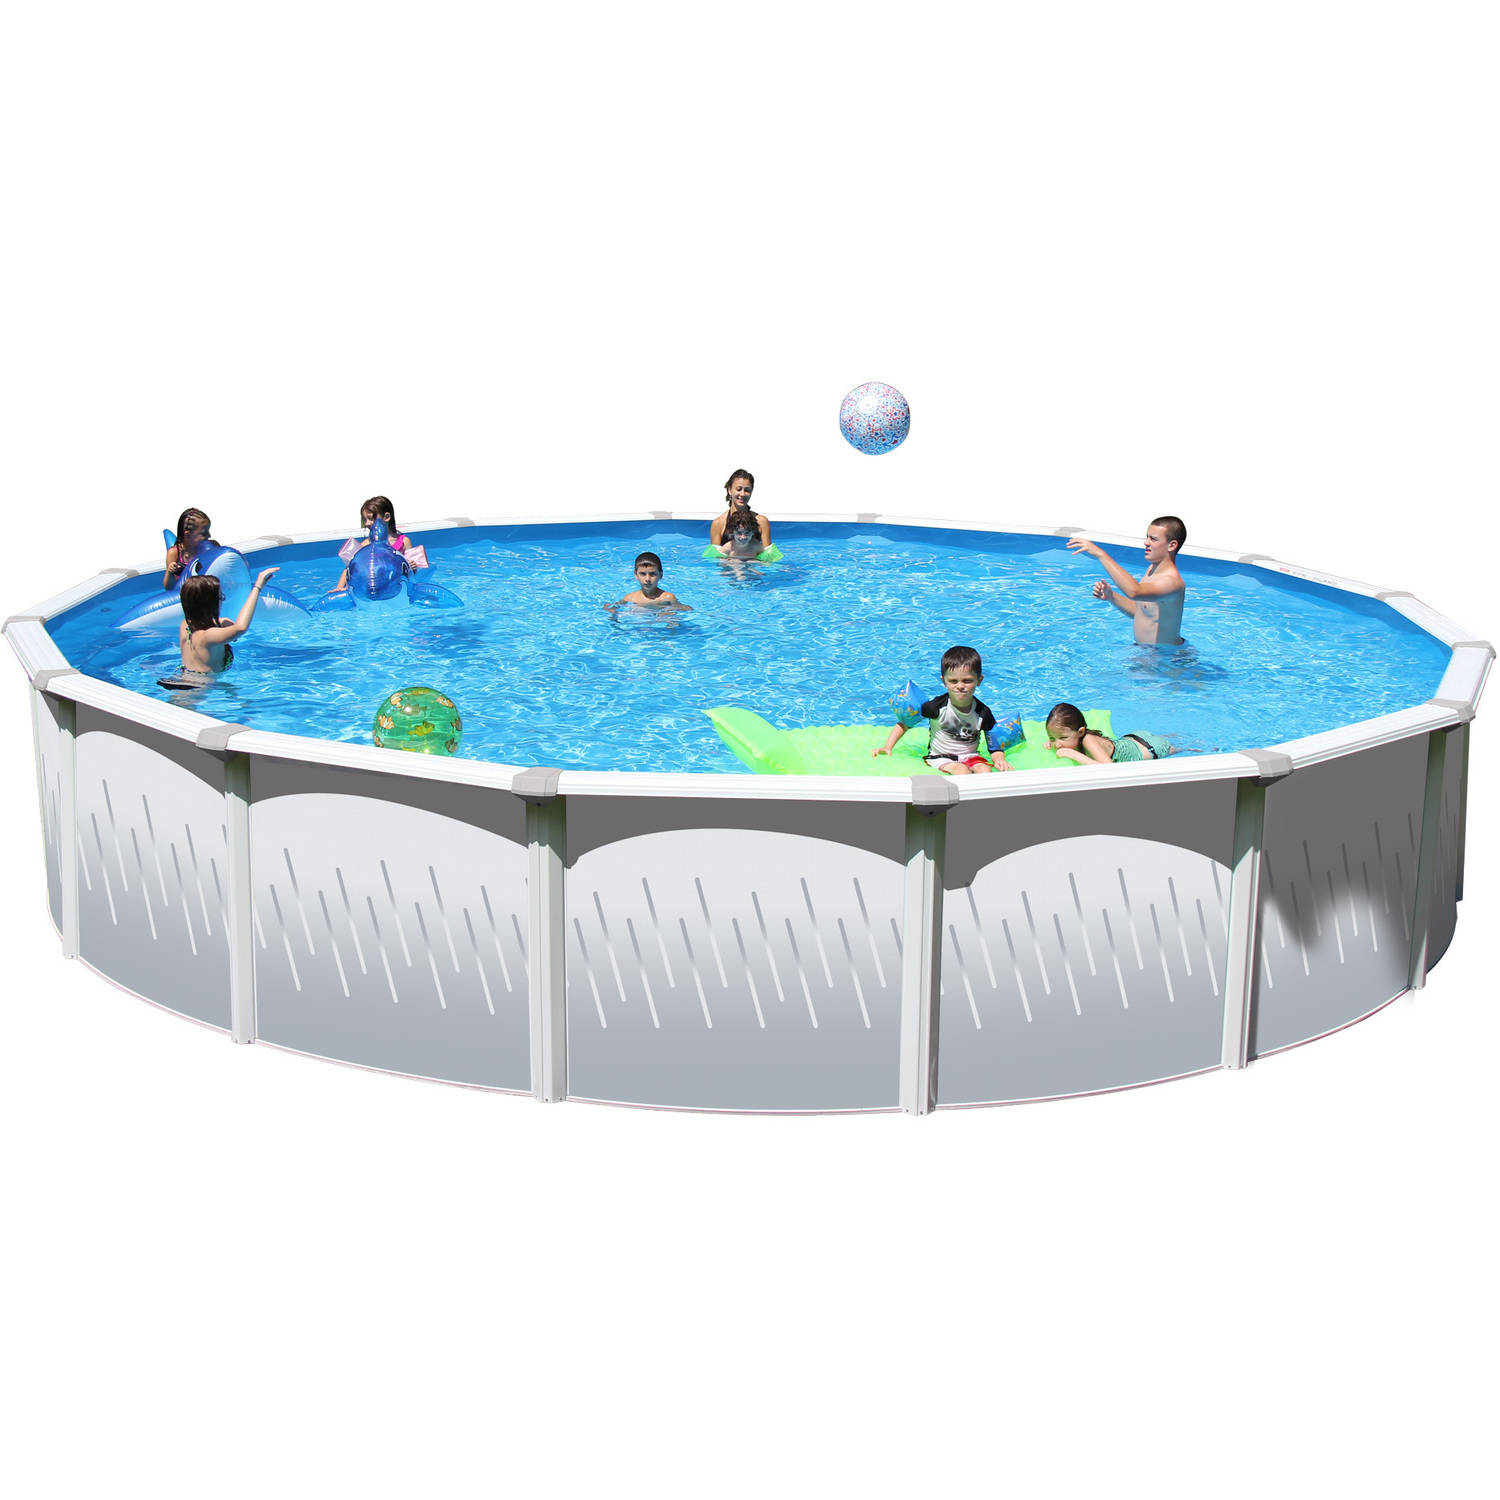 """Heritage 24' x 52"""" Taos Steel WallAbove Ground Swimming Pool by Heritage"""